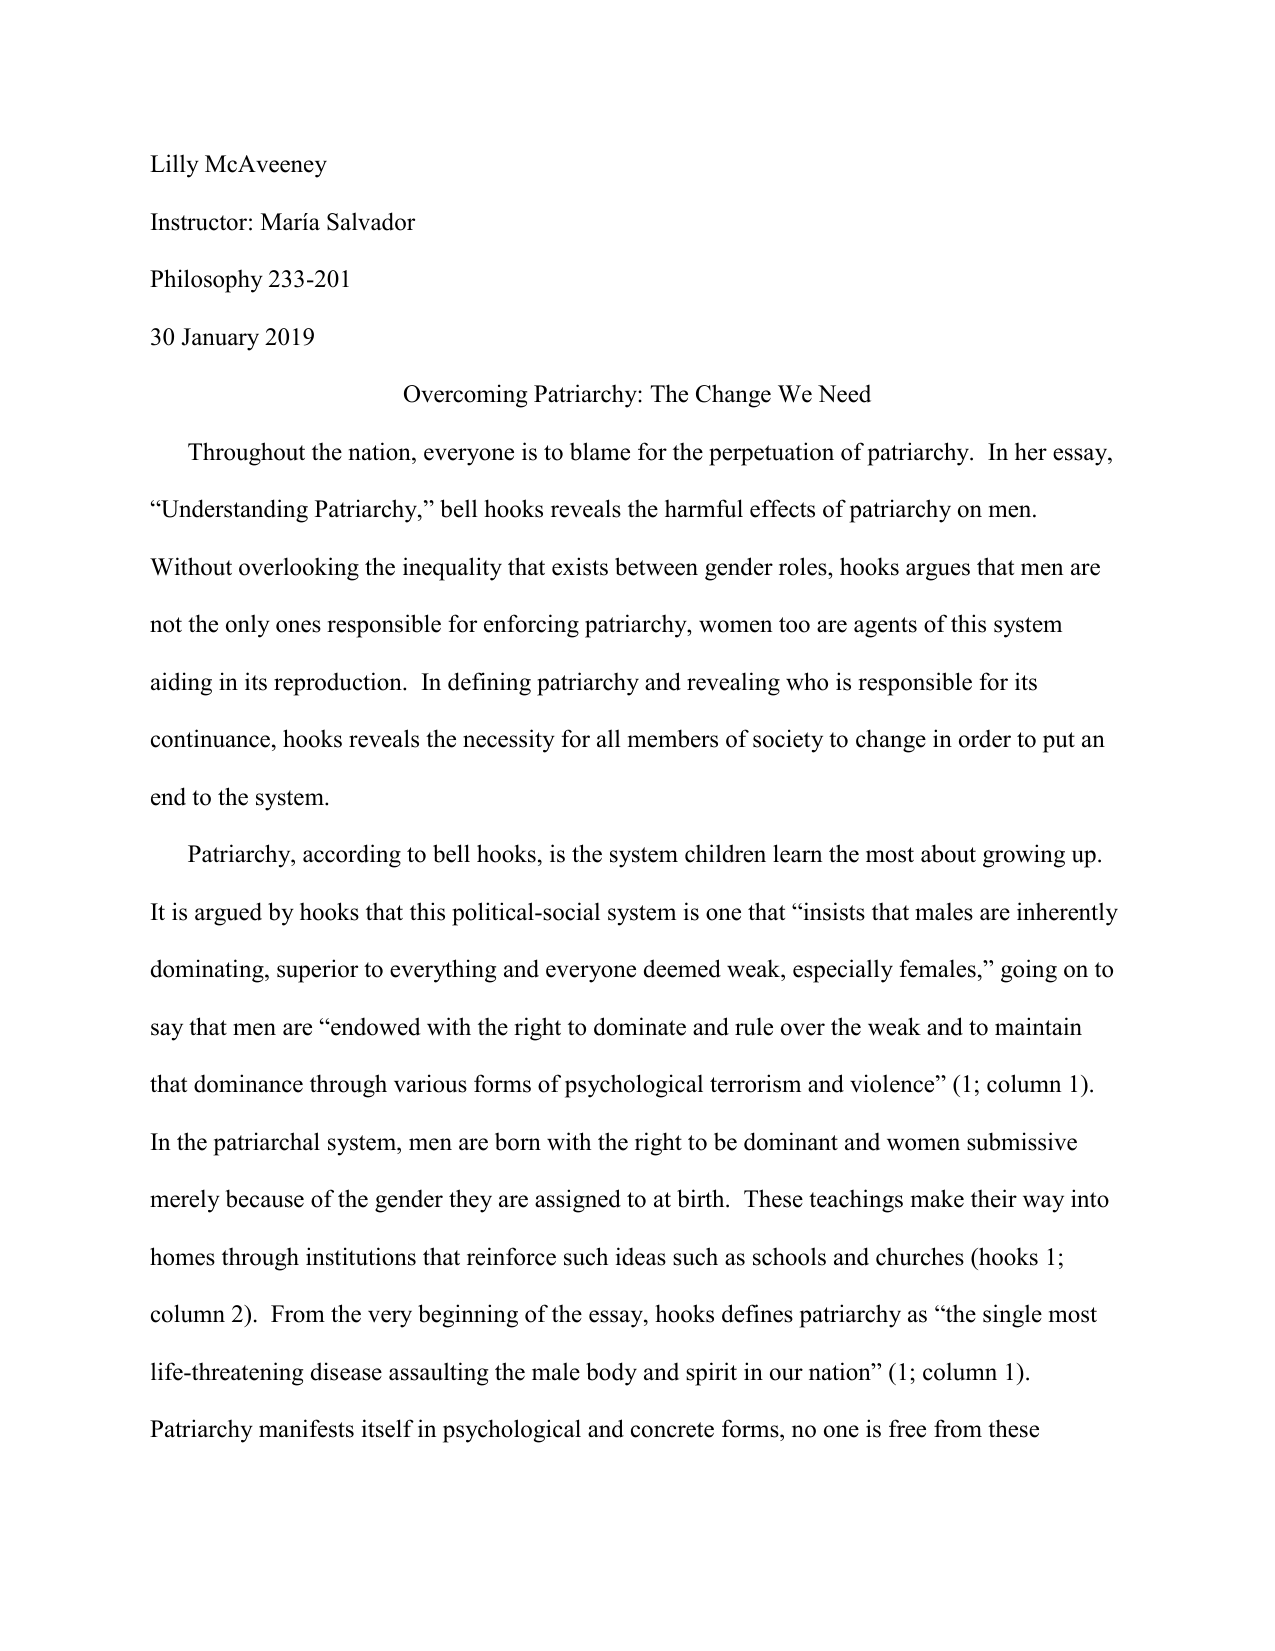 Patriarchy Essay ⋆ Essays on Controversial Topics ⋆ EssayEmpire